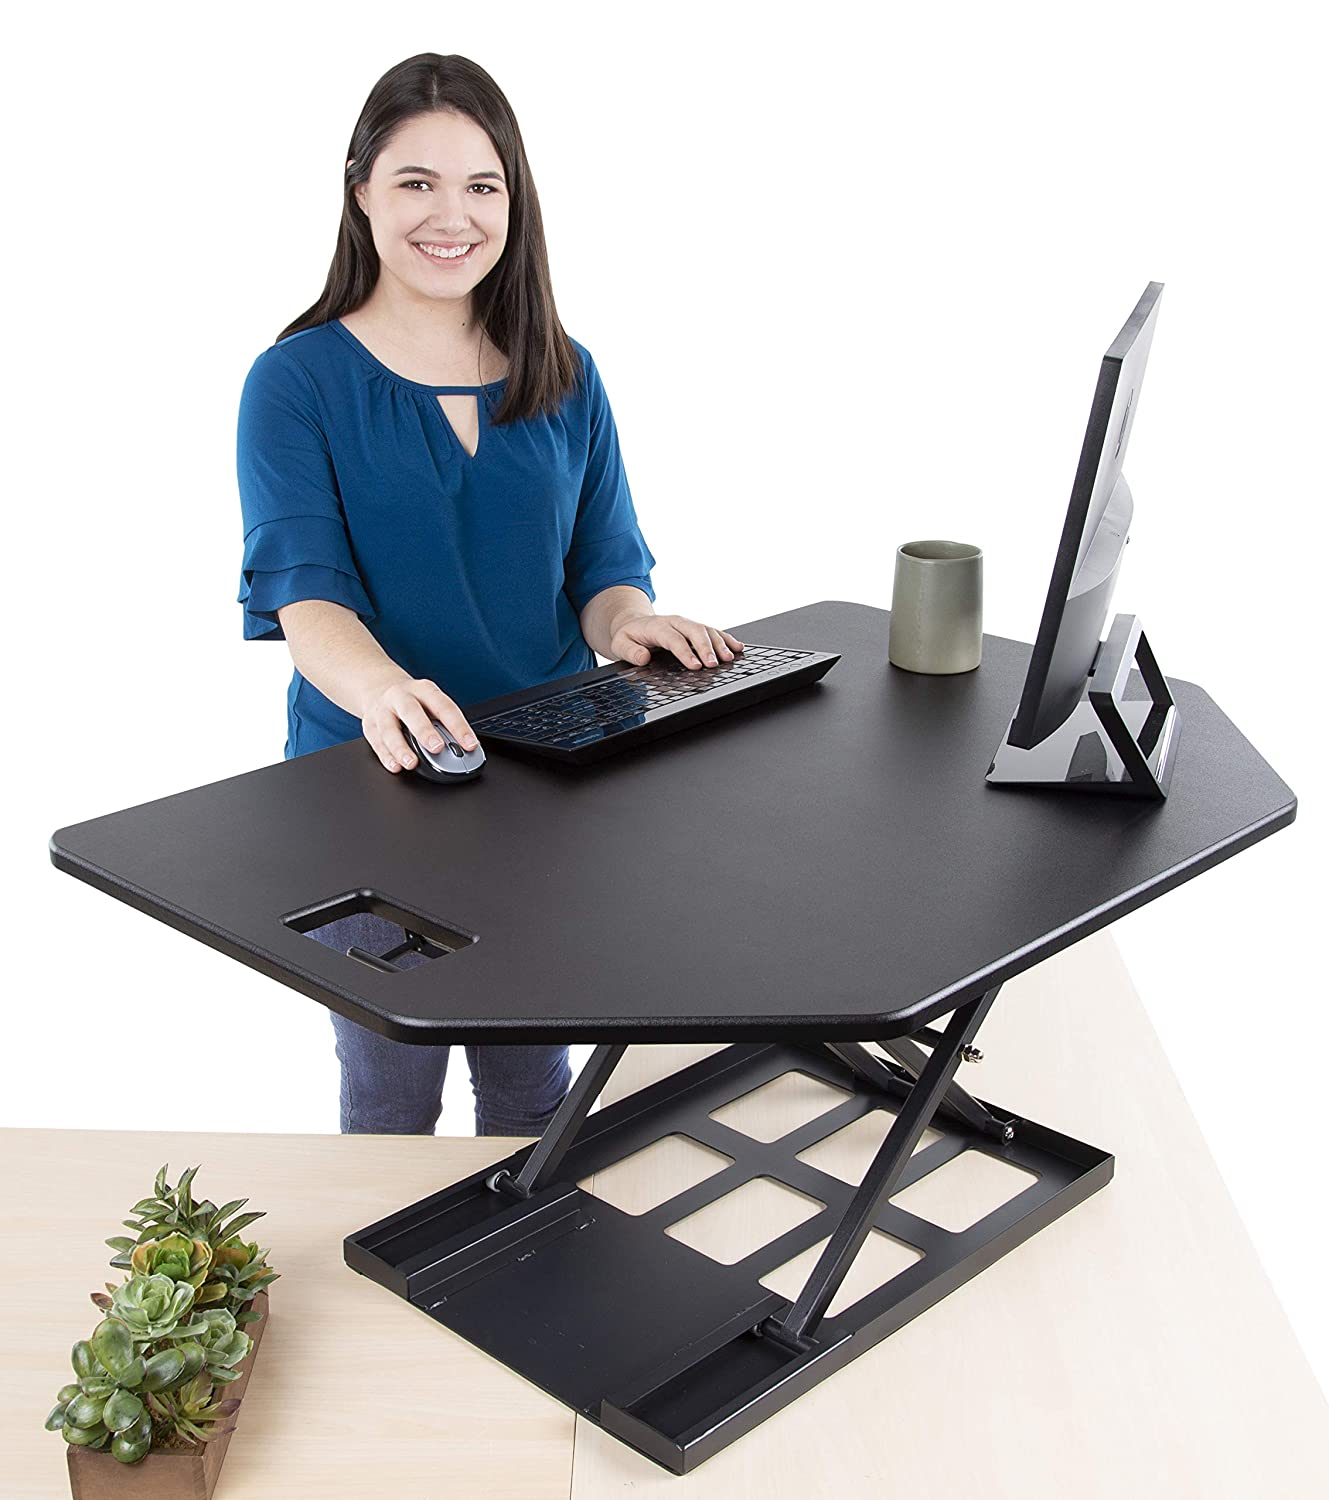 Stand Steady Flexpro Hero Extra Large 47' Standing Desk | Huge Work Space w/Extra Level for Keyboard Tray | Easily Convert Any Surface to a Stand-Up Desk! (47' x 31')